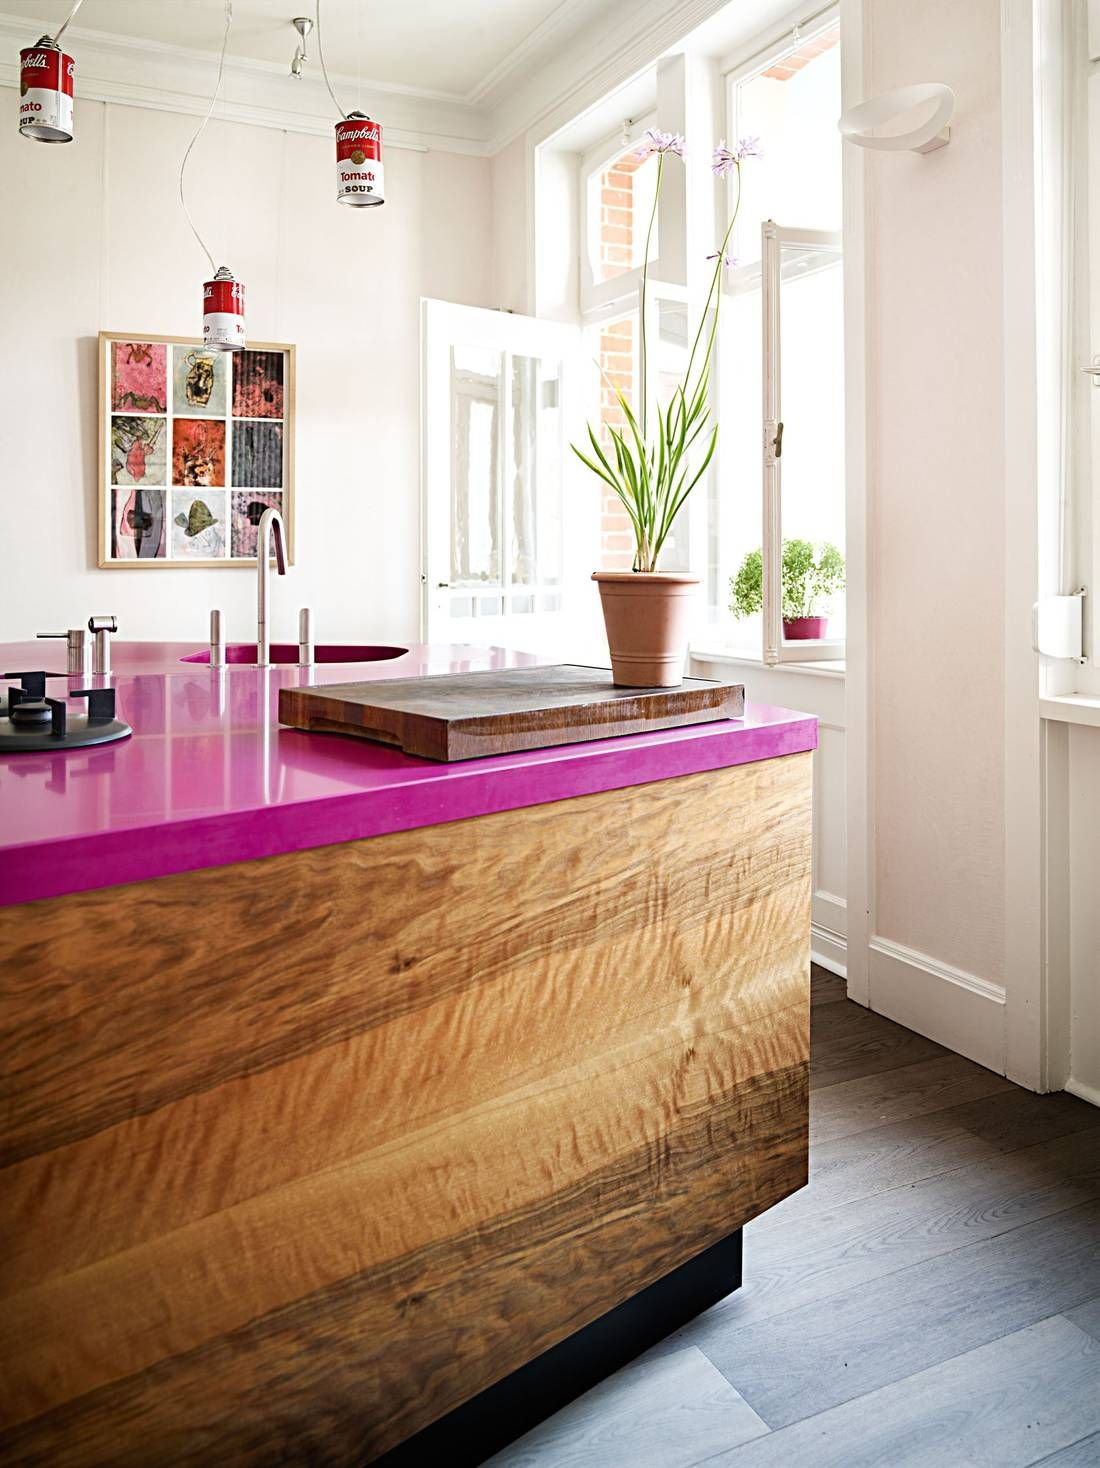 Pink Colors In A Modern Style Kitchen With Quartz Countertops And Soup Decor Lighting